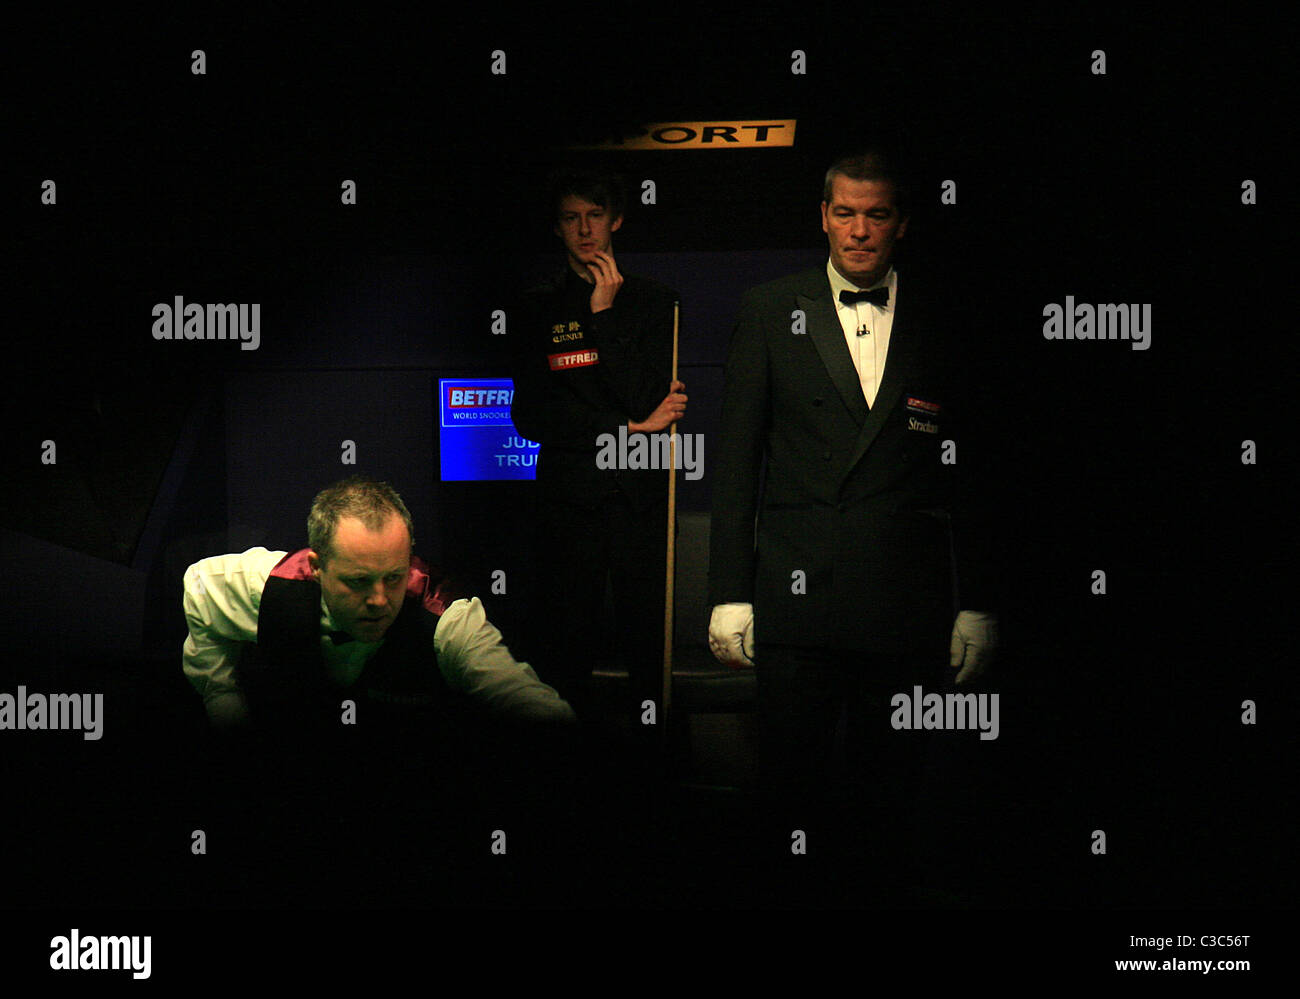 ohn Higgins in action against Judd Trump - Stock Image